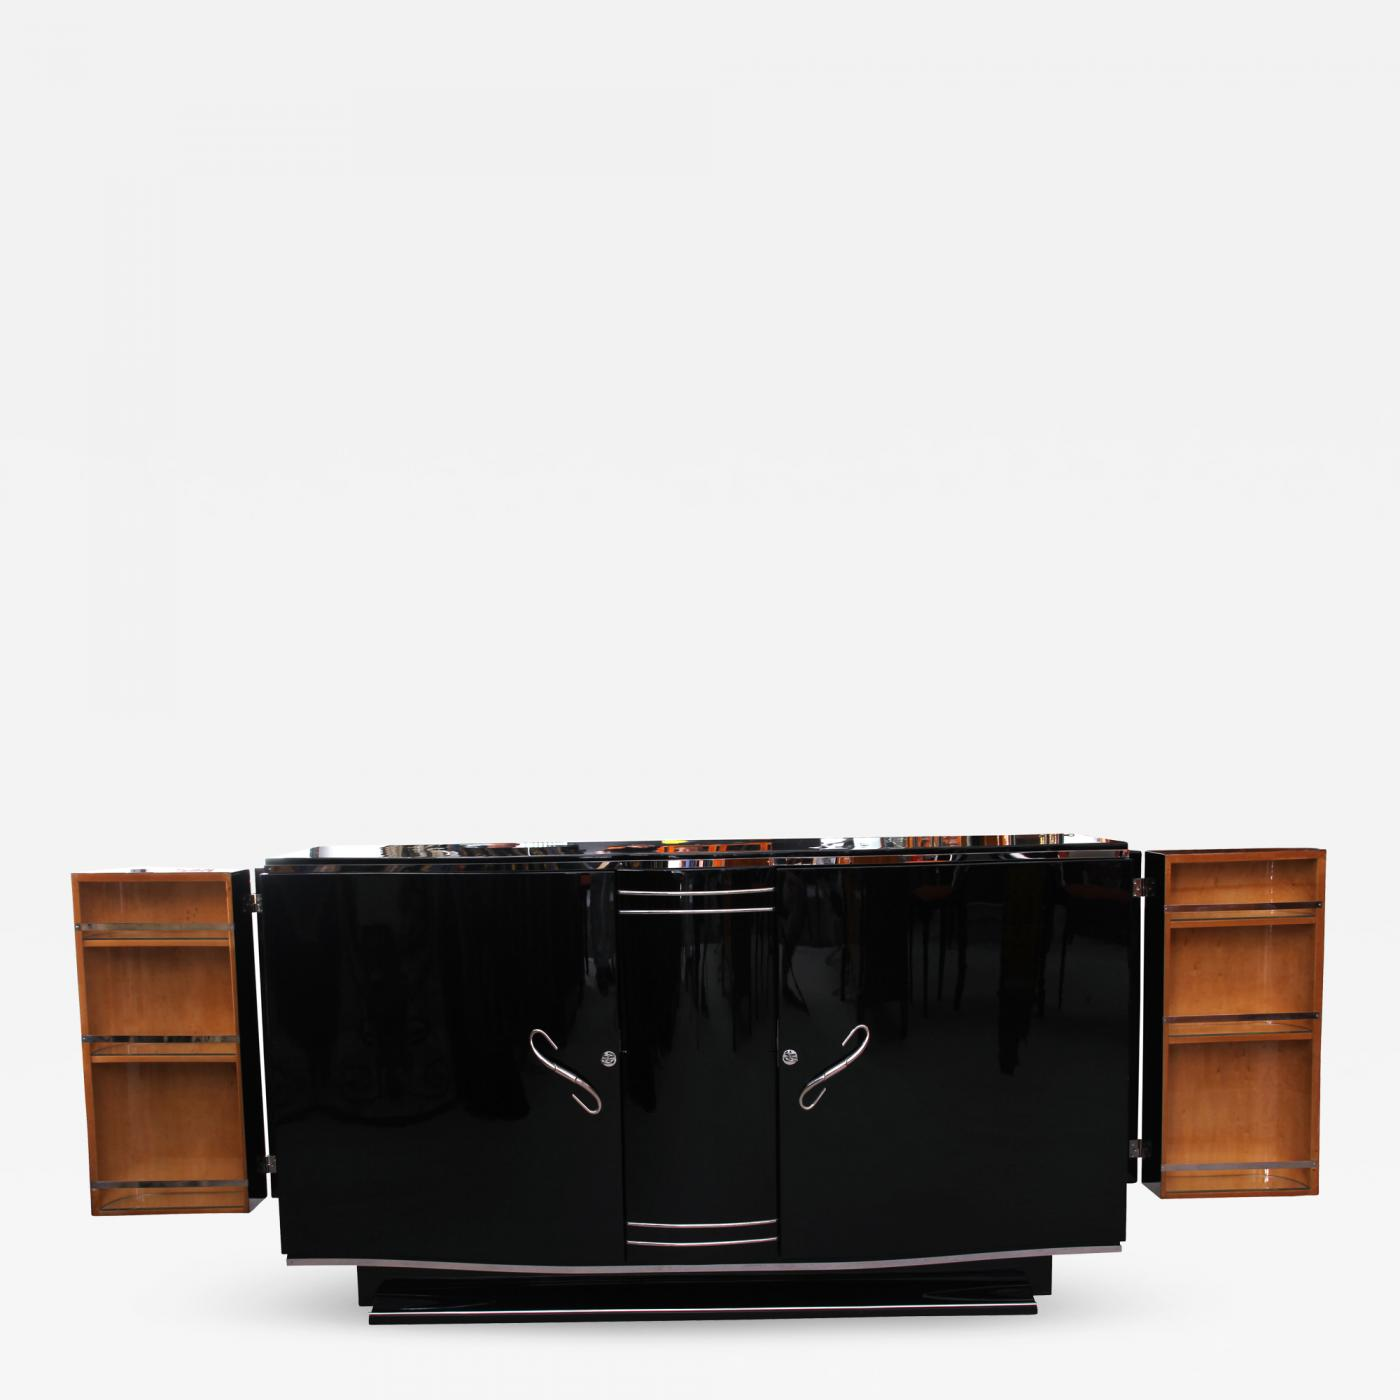 Art Deco Möbel Shop French Art Deco Sideboard With Fold Out Bar Ca 1930